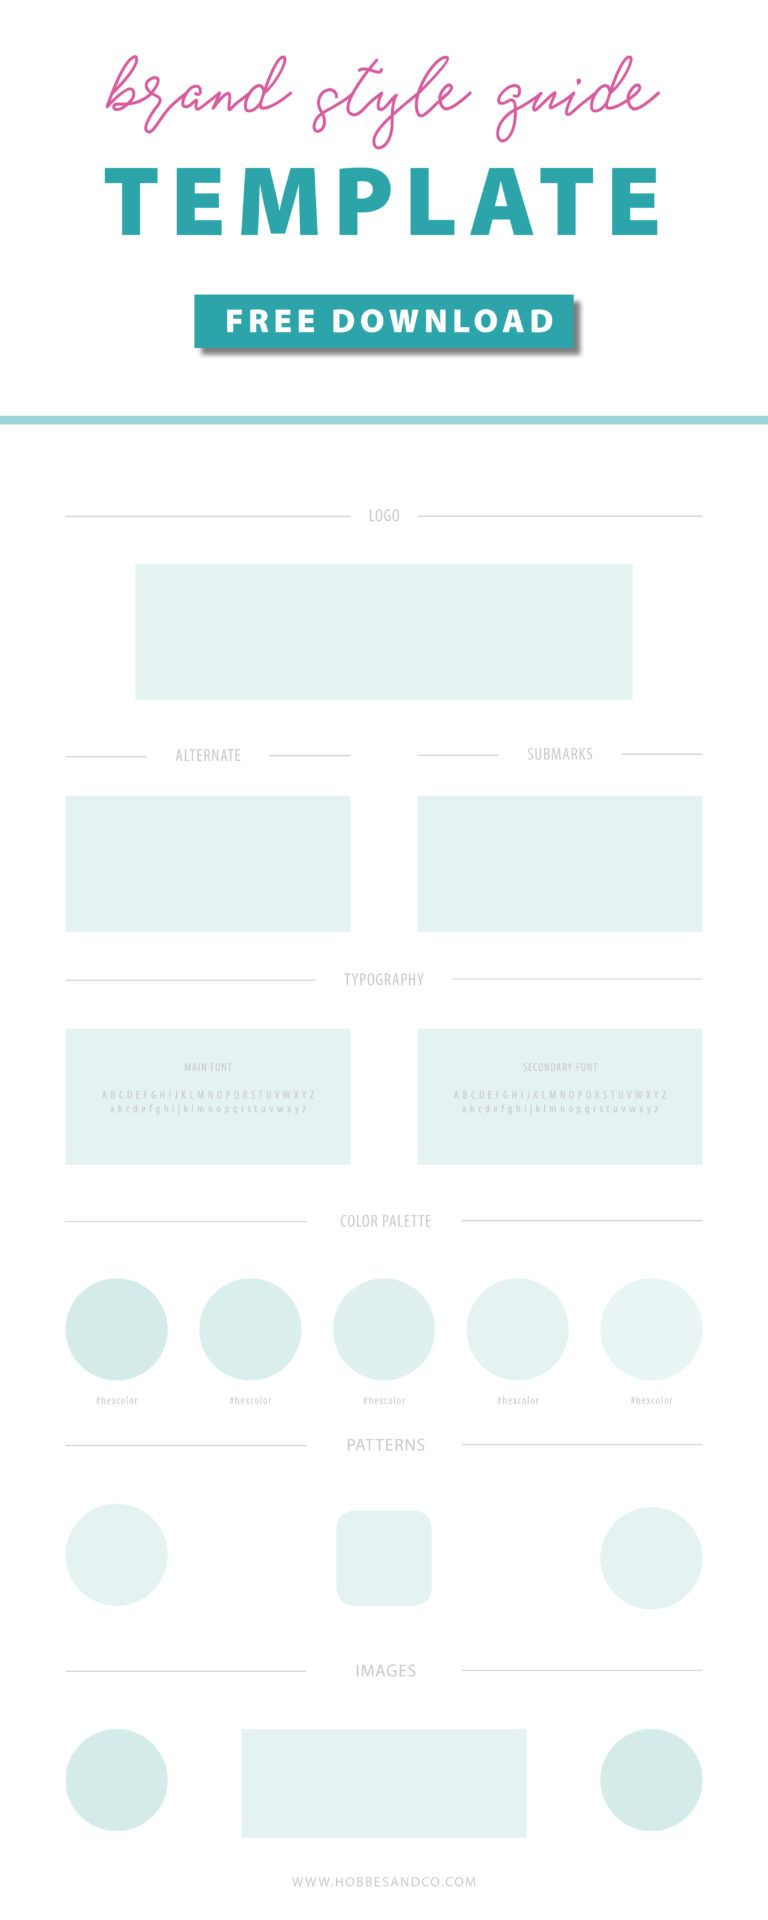 Steps To Creating Your Brand Style Guide Brand Style Guide - Brand style guide template